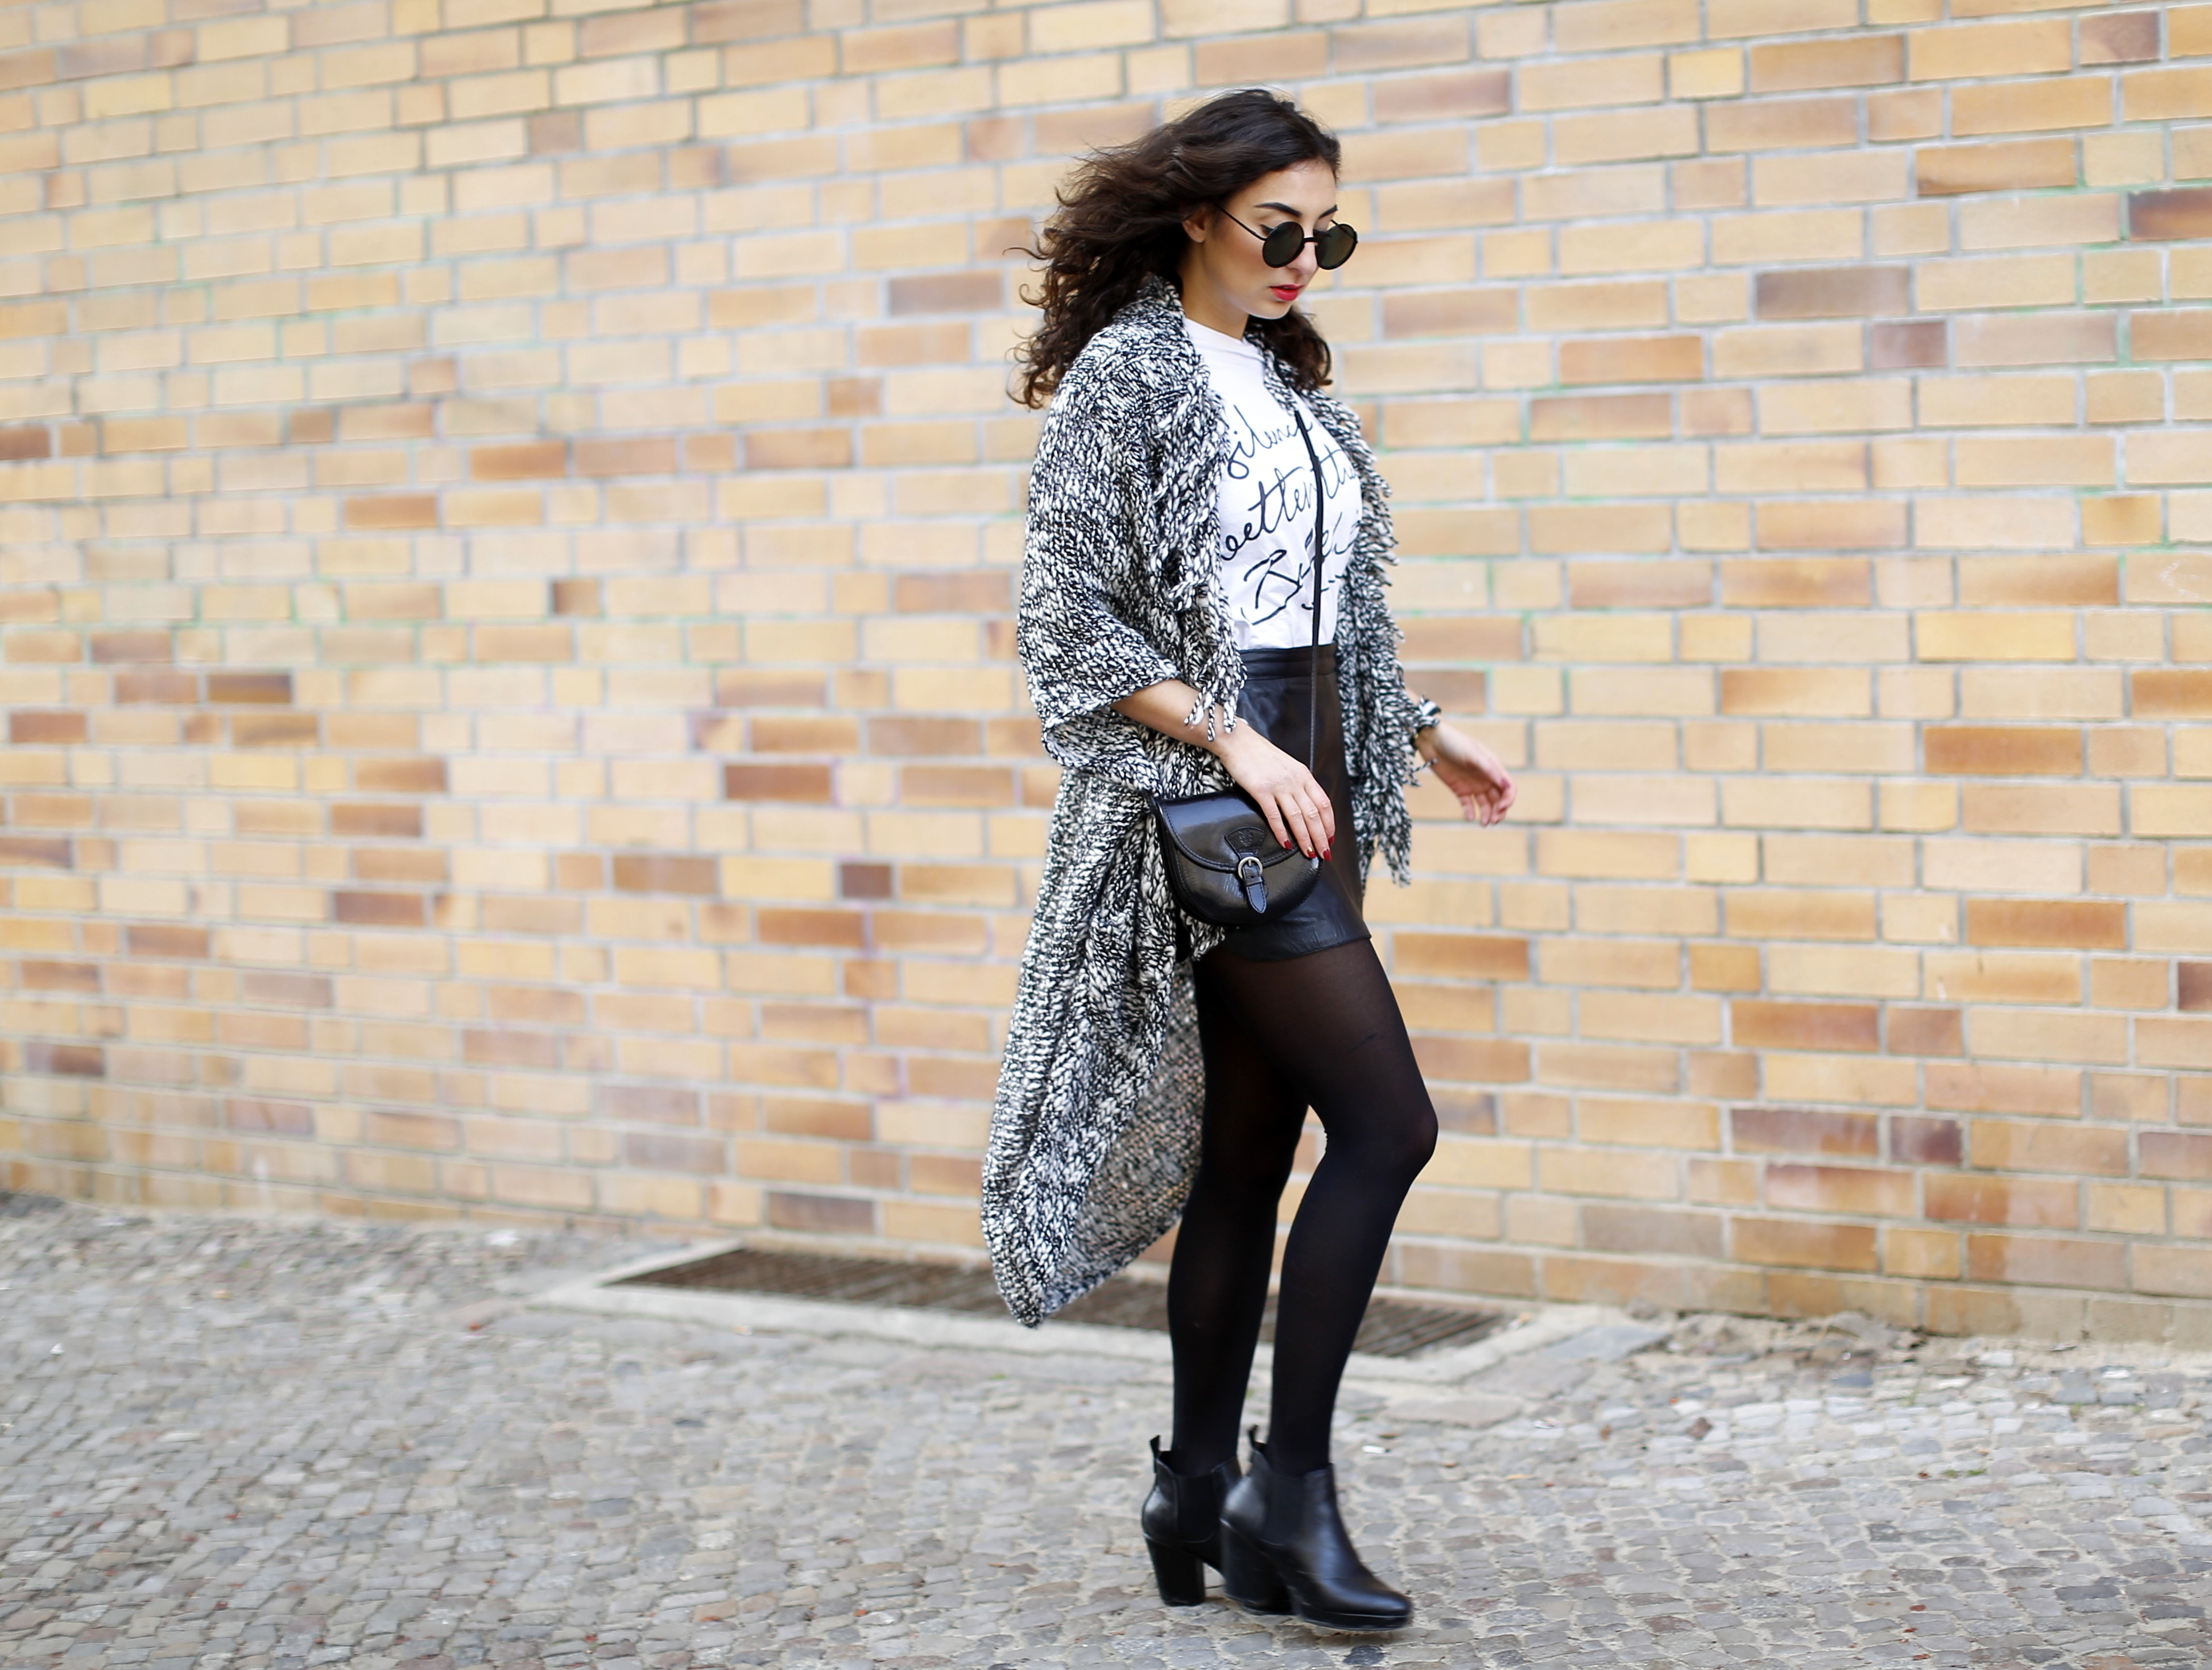 esprit long cardigan outfit black and white look black leather skirt  streetstyle berlin look motto shirt ... 58e456e3c